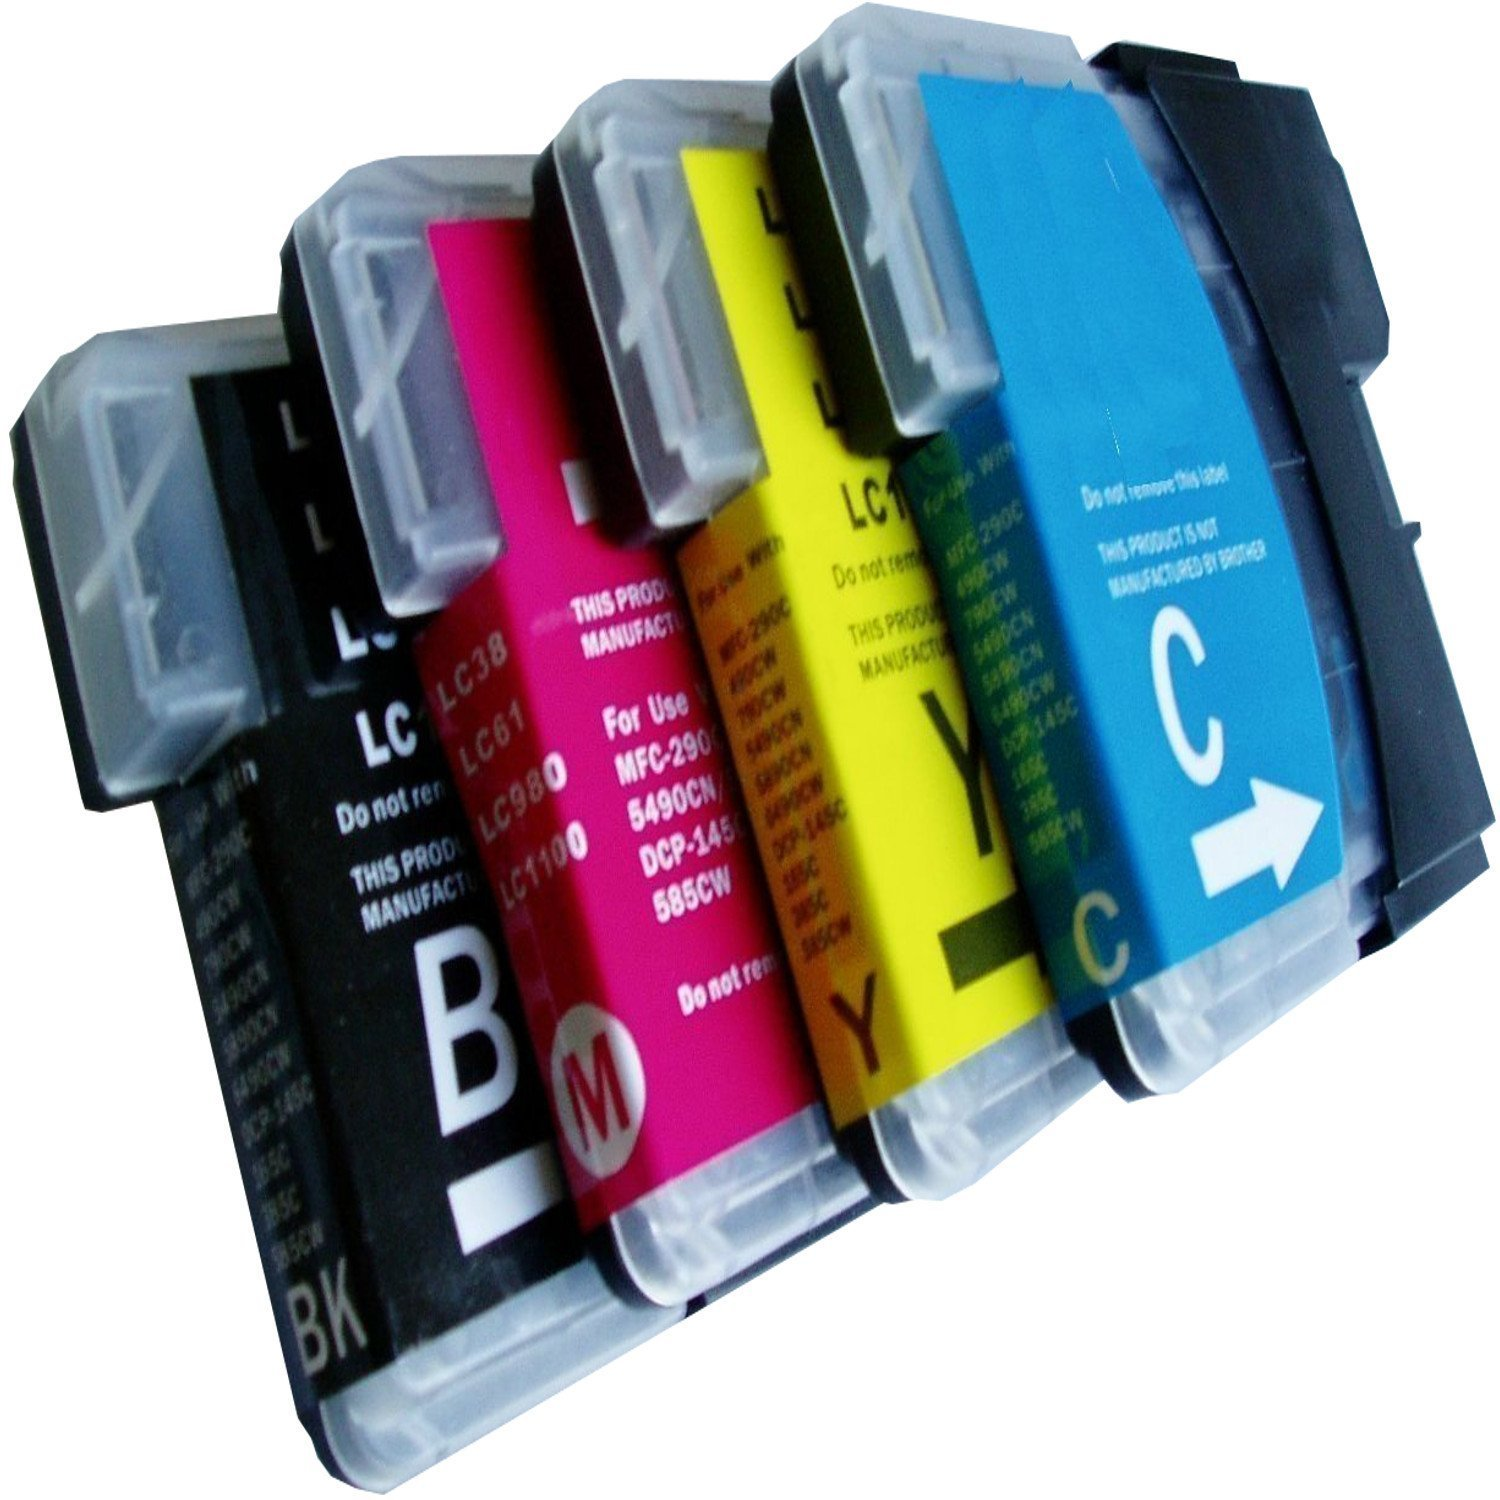 4 XL Printer Cartridges Comp with COMPATIBLES BROTHER LC985 ...